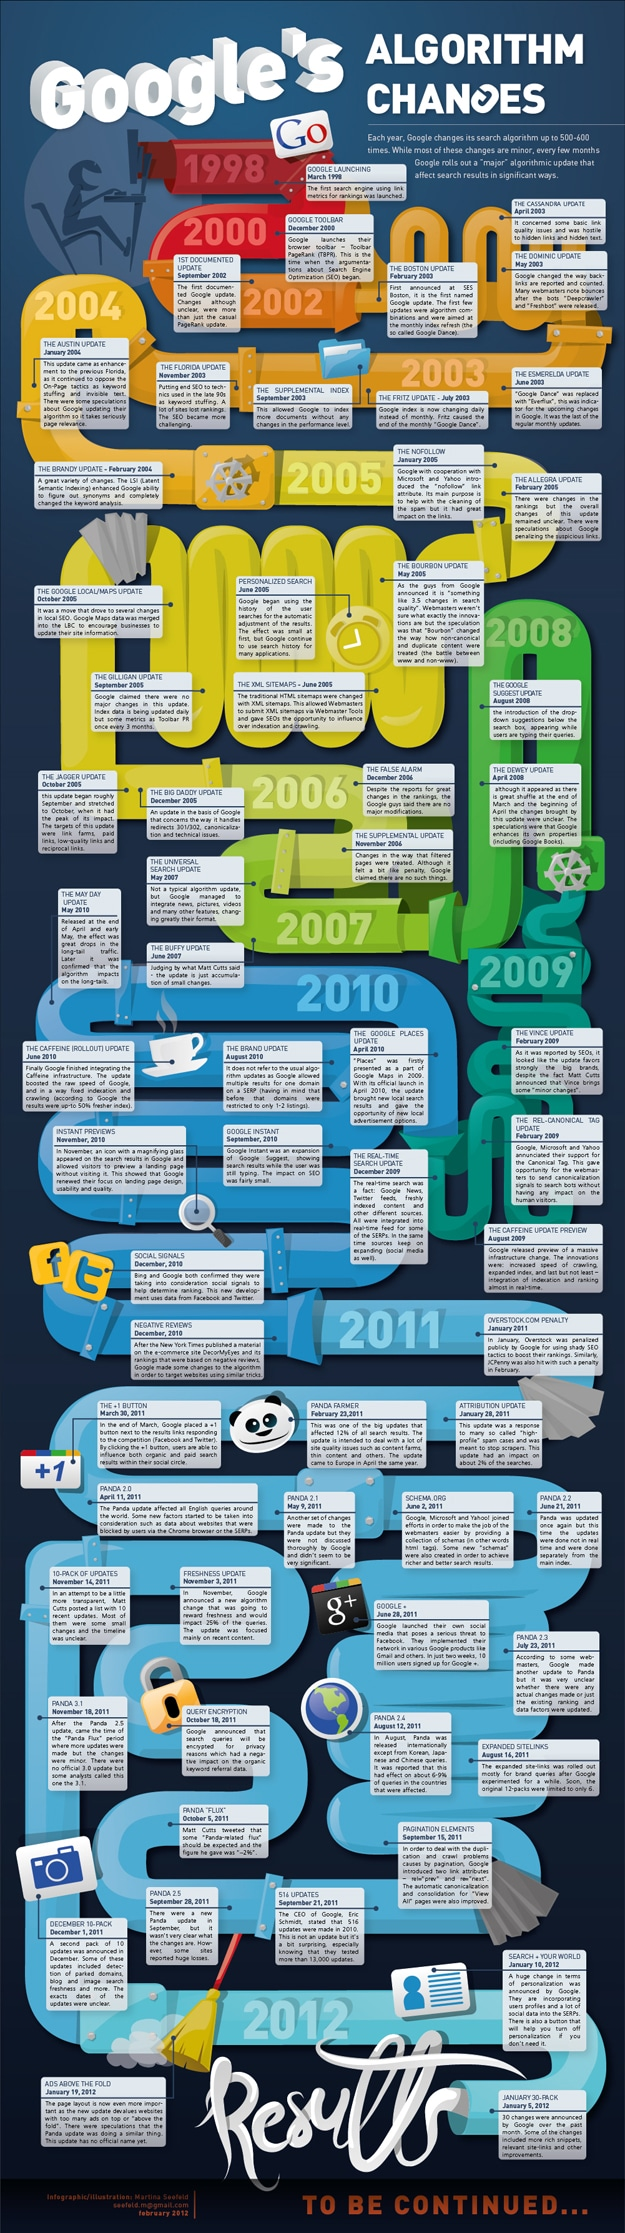 SEO-Googles-Algorithm-Changes-Infographic